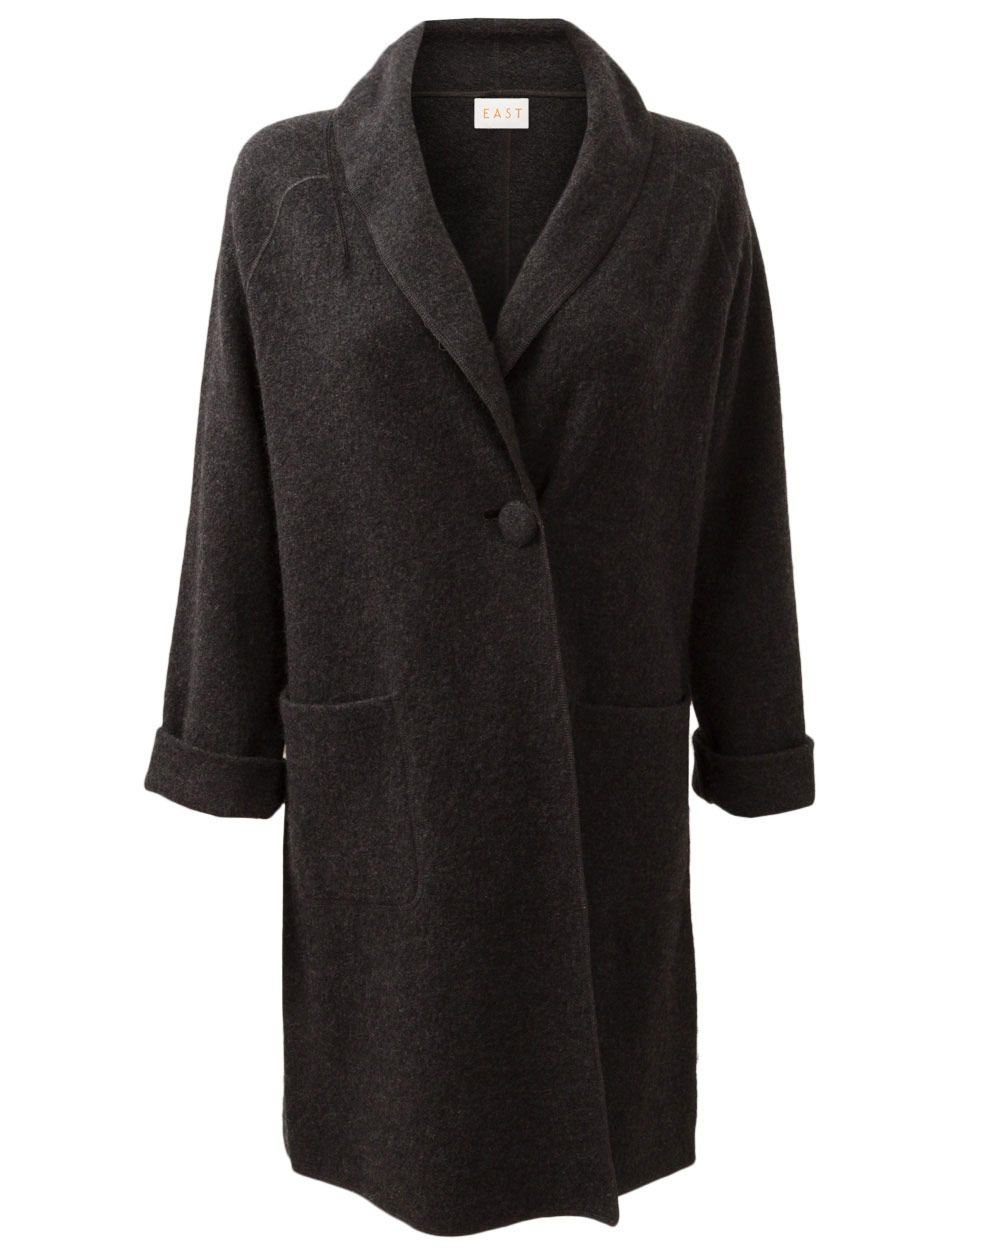 Boiled wool shawl coat